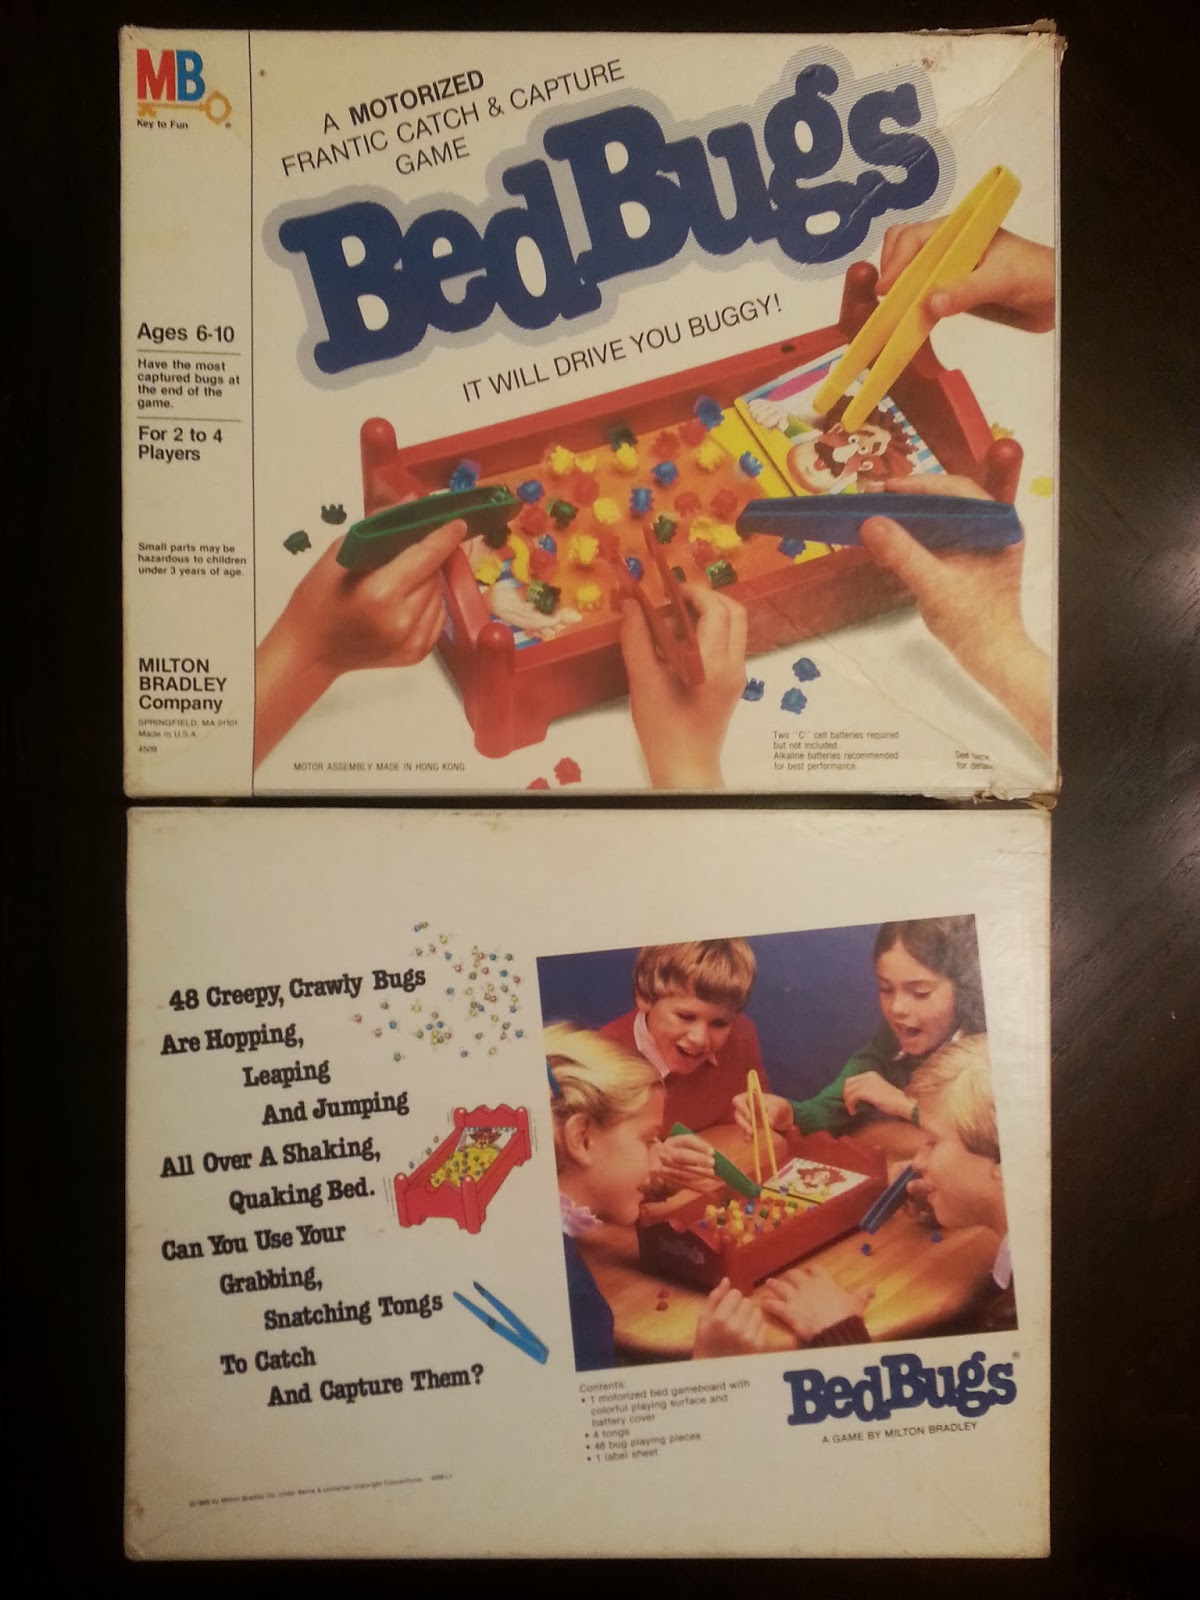 Bedbugs A Board Game A Day